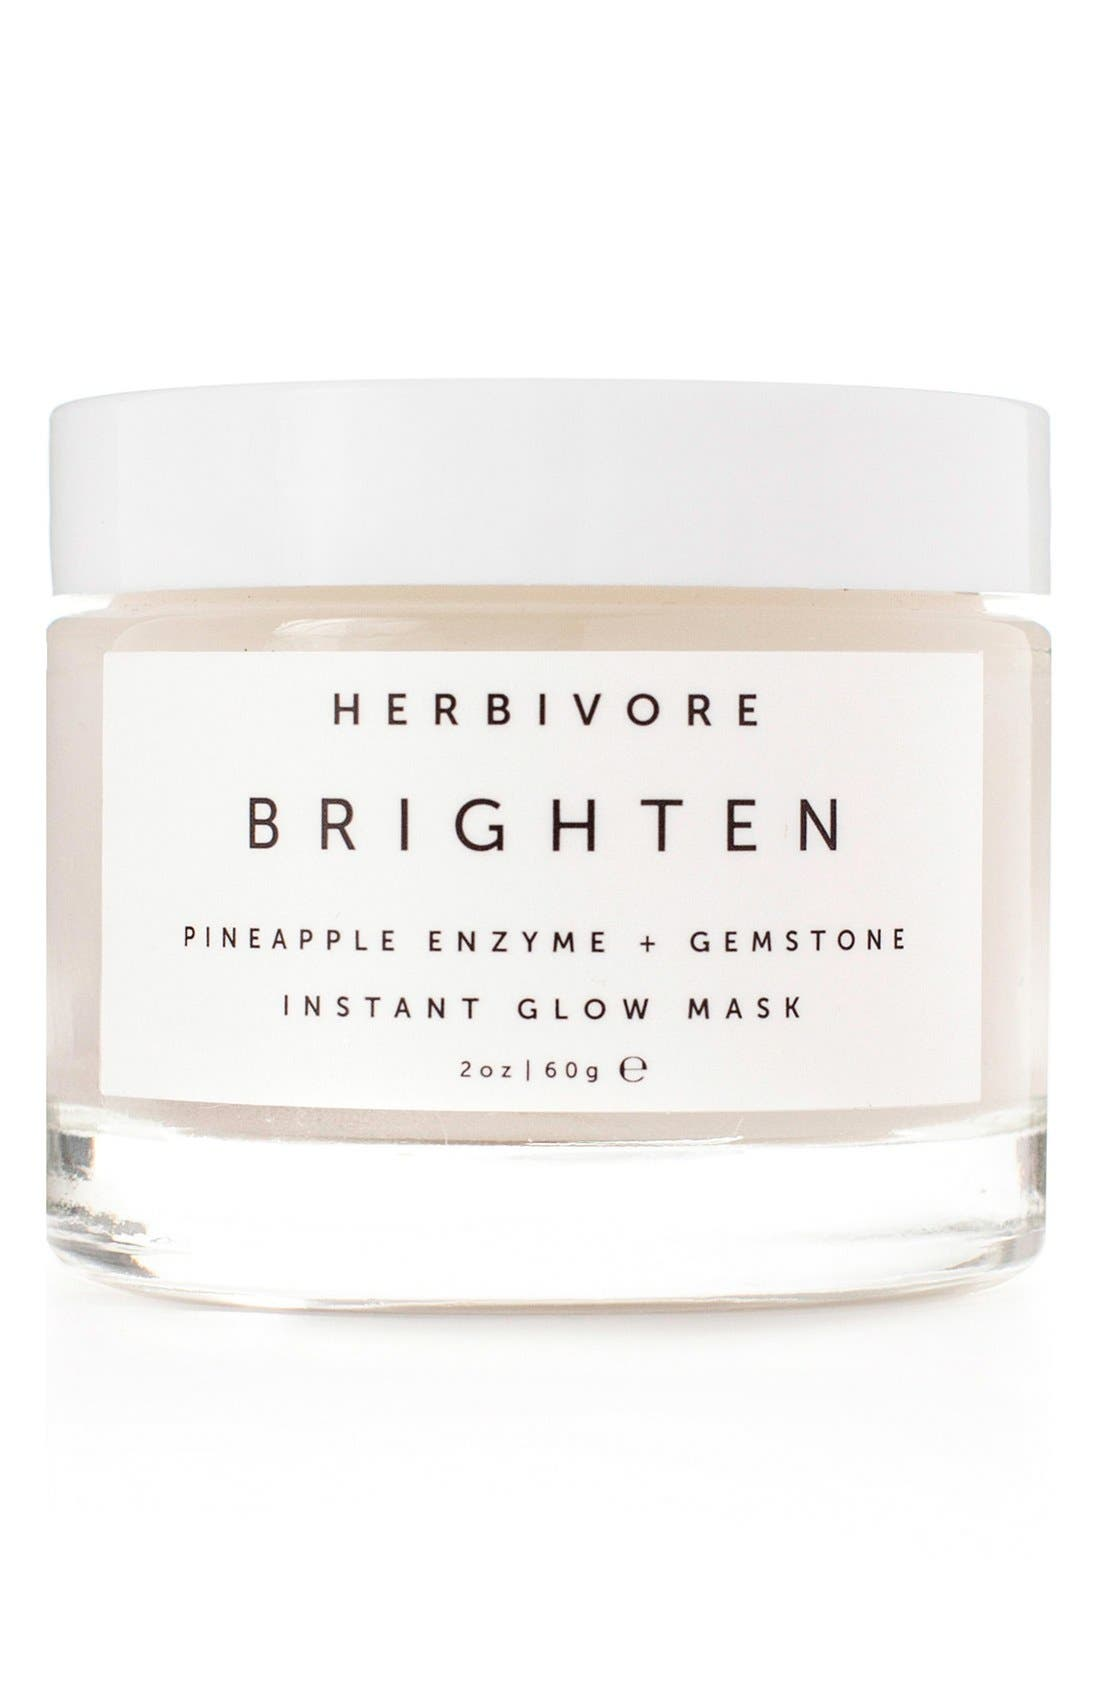 Herbivore Botanicals Brighten Pineapple Enzyme + Gemstone Instant Glow Mask